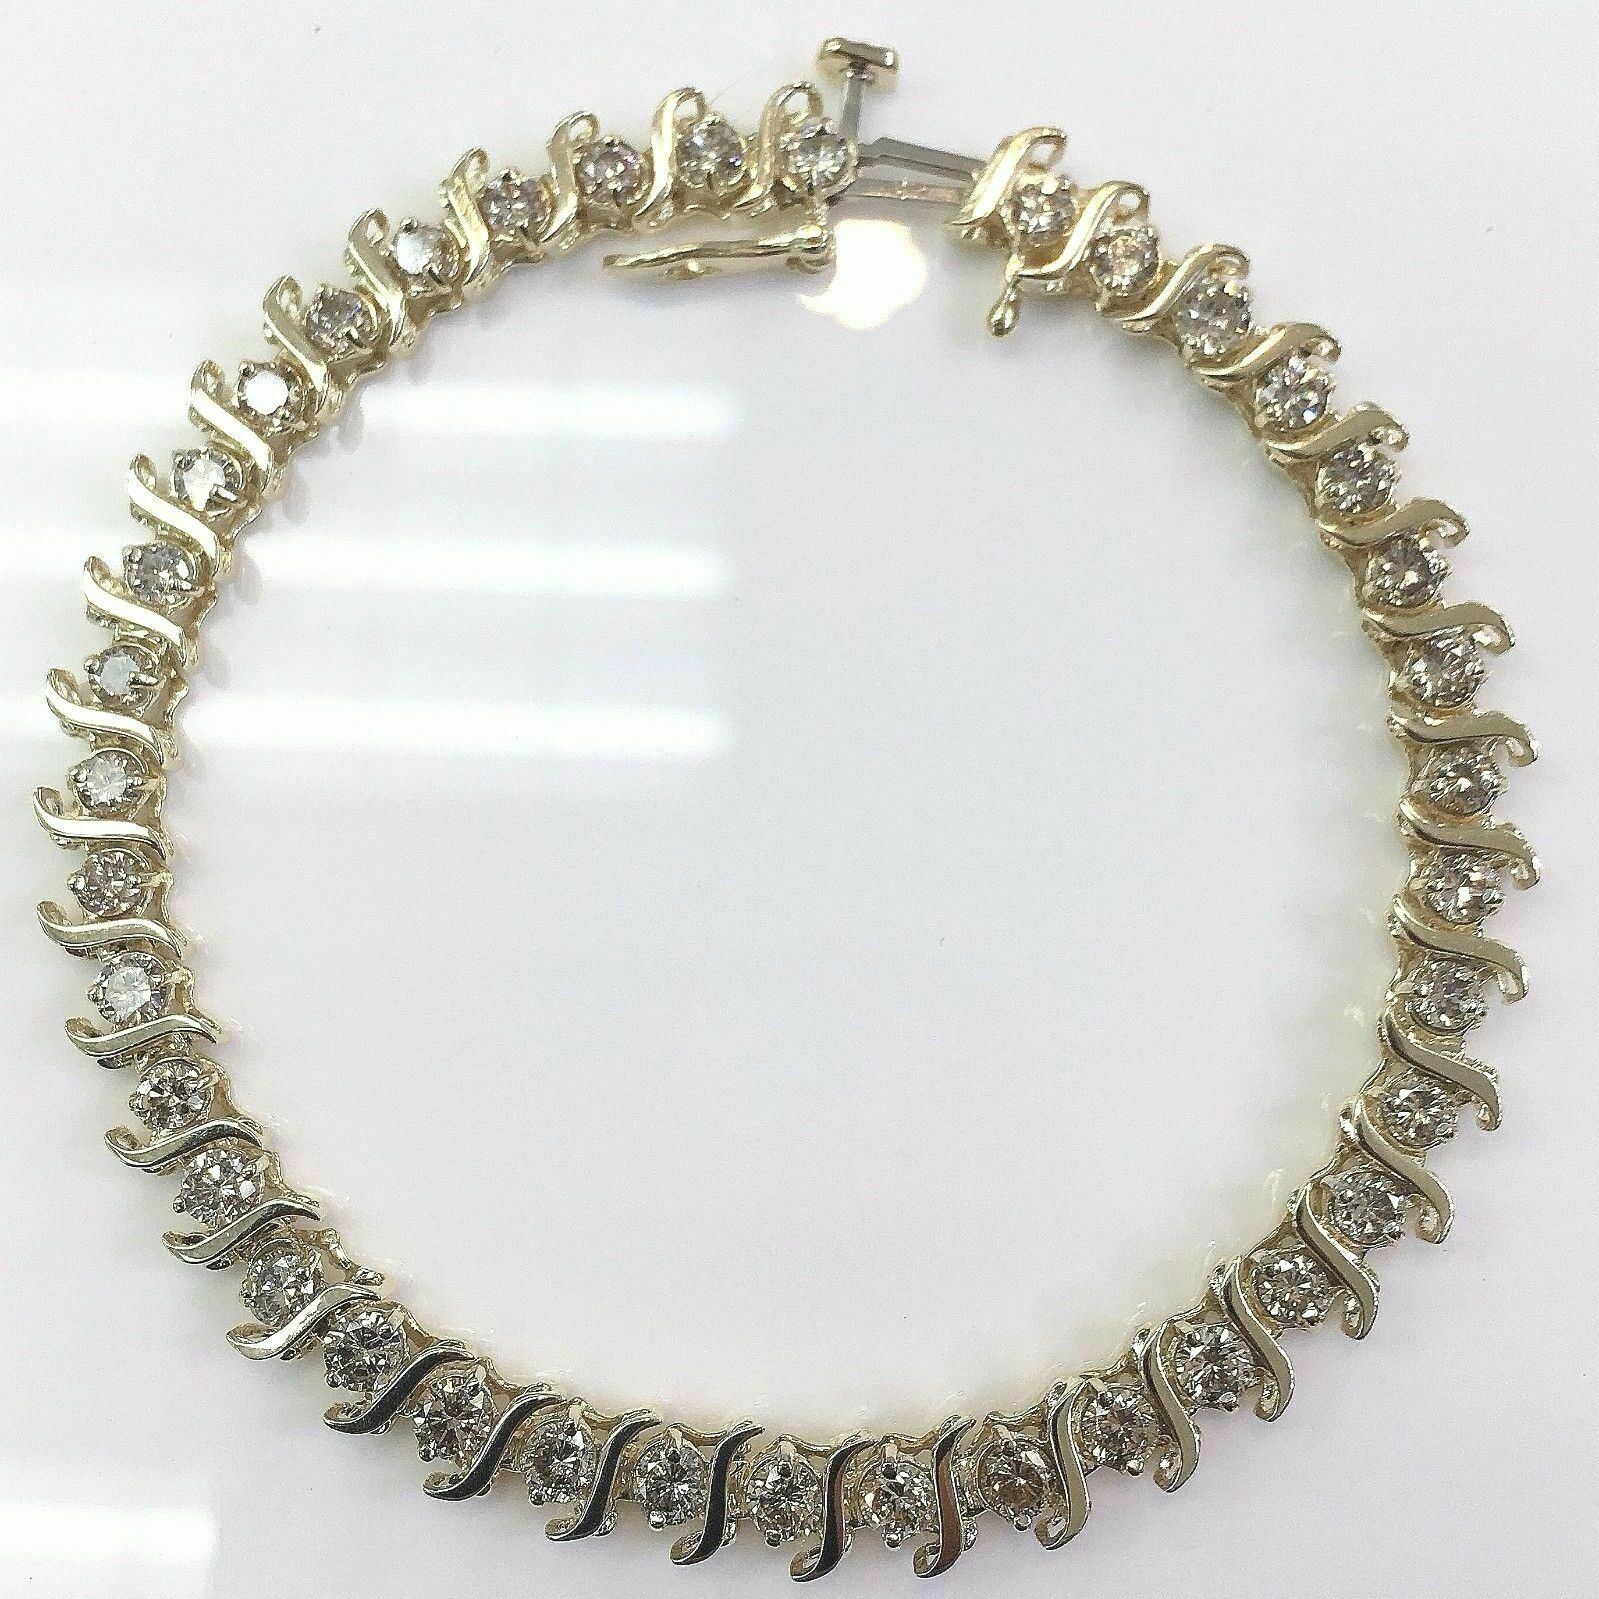 3.32 Carats t.w. Diamond S Tennis Bracelet 14K Gold 11.6 Grams